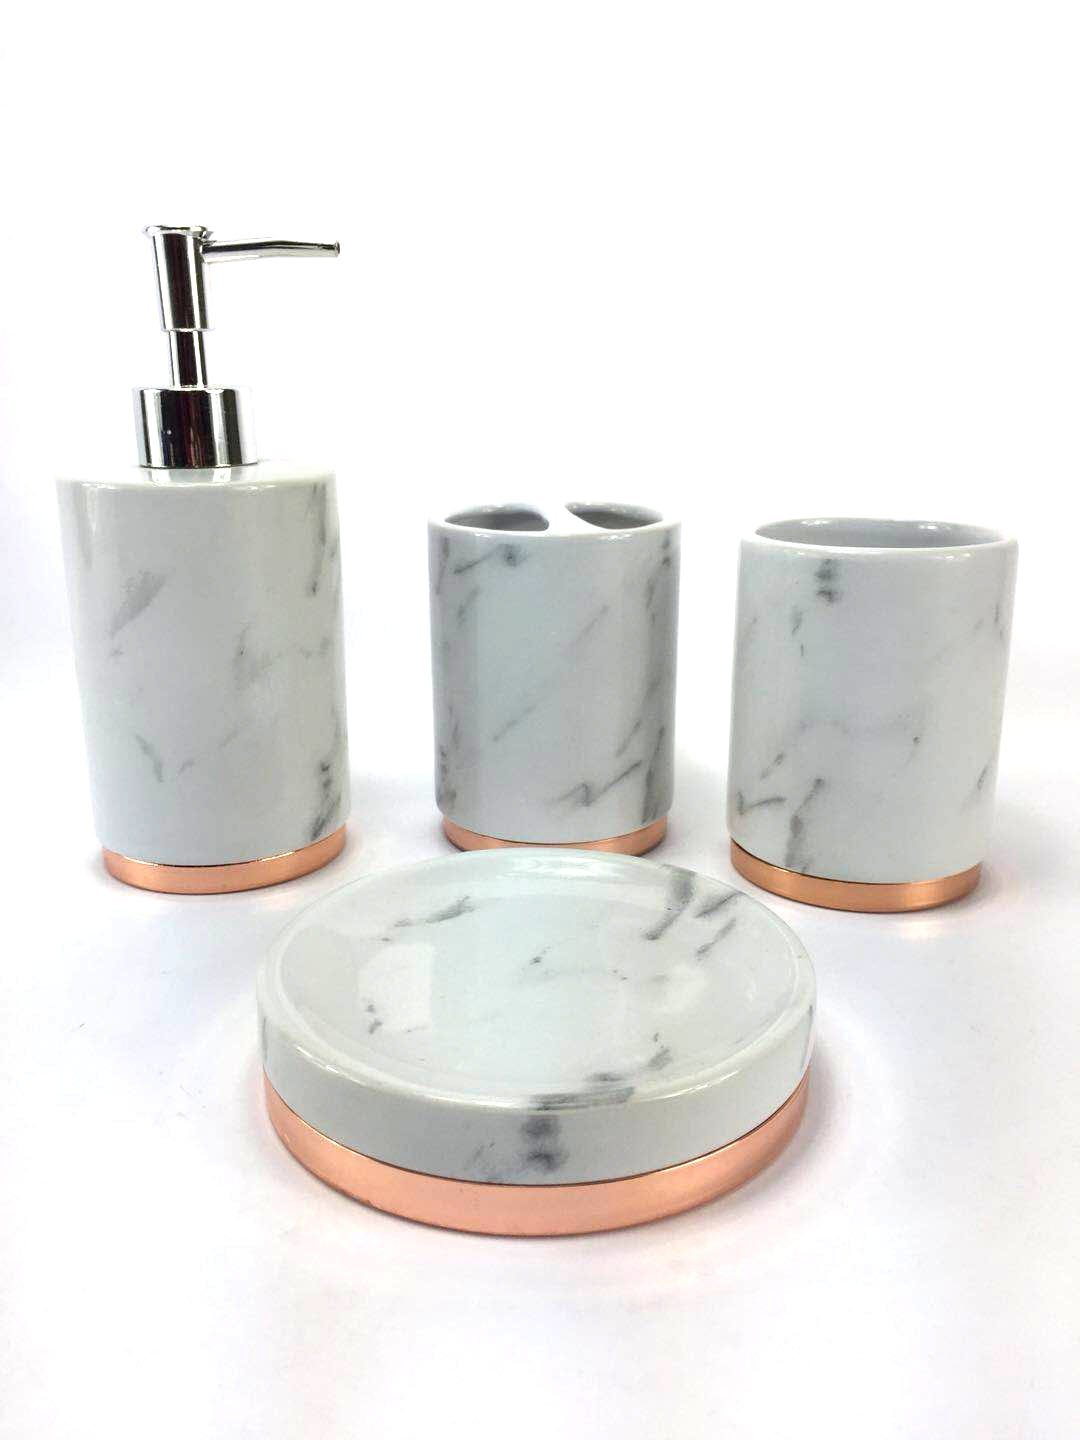 WPM 4 Piece Bathroom Accessory Set. Marble look with rose gold trim